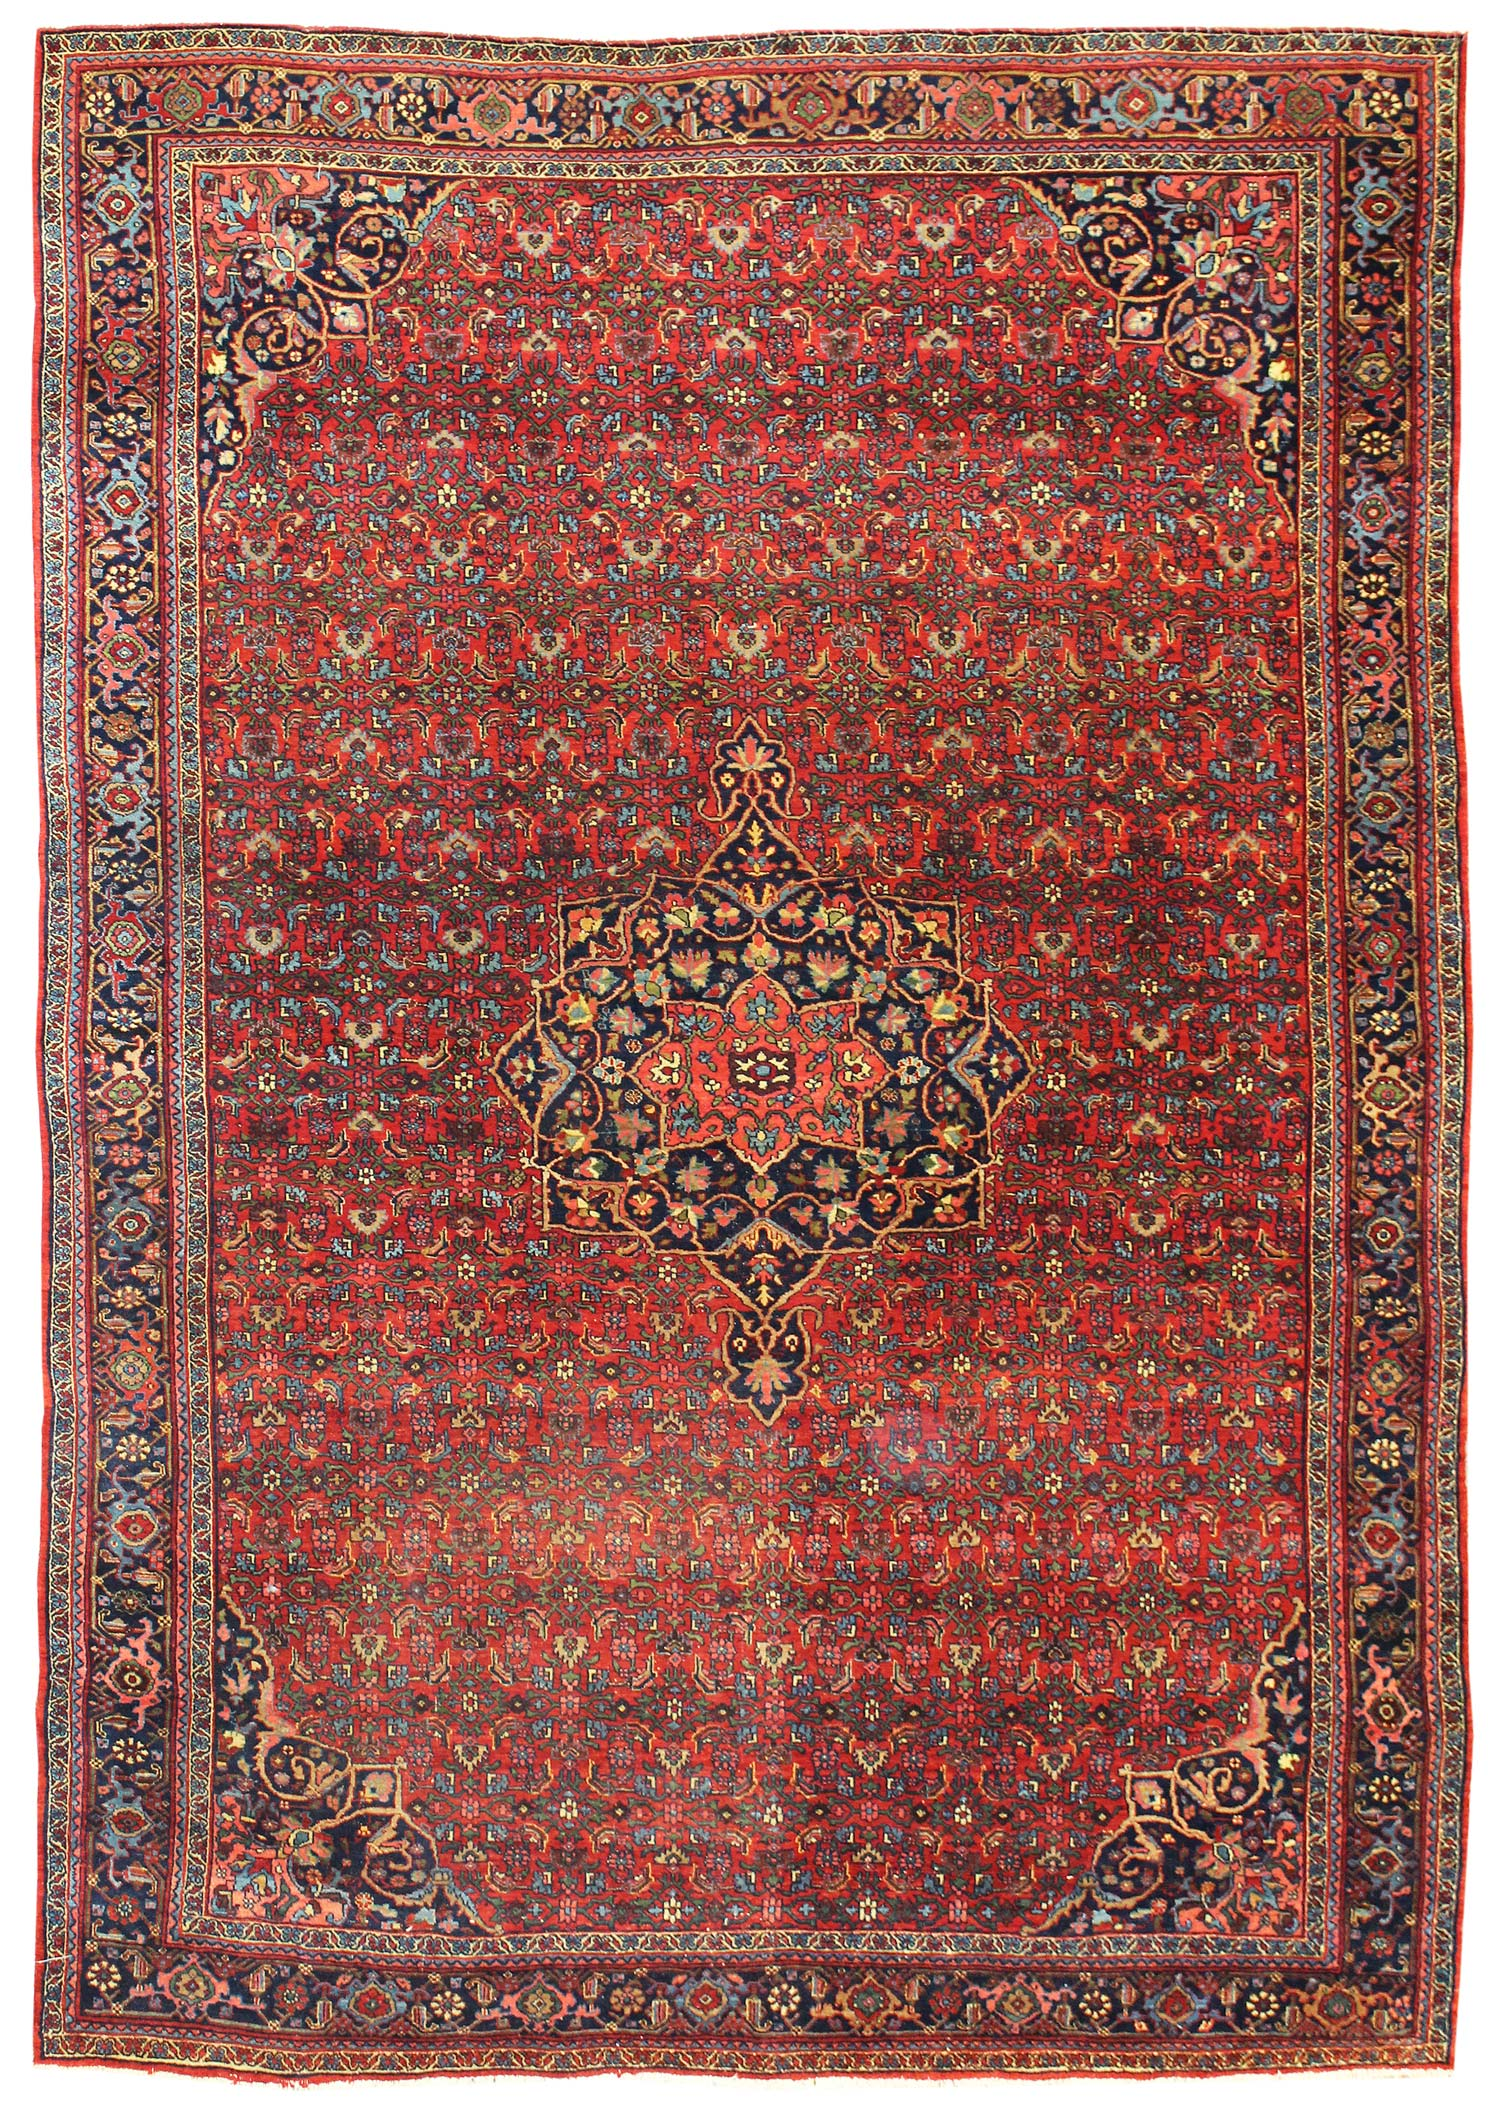 Antique Bijar Handwoven Traditional Rug